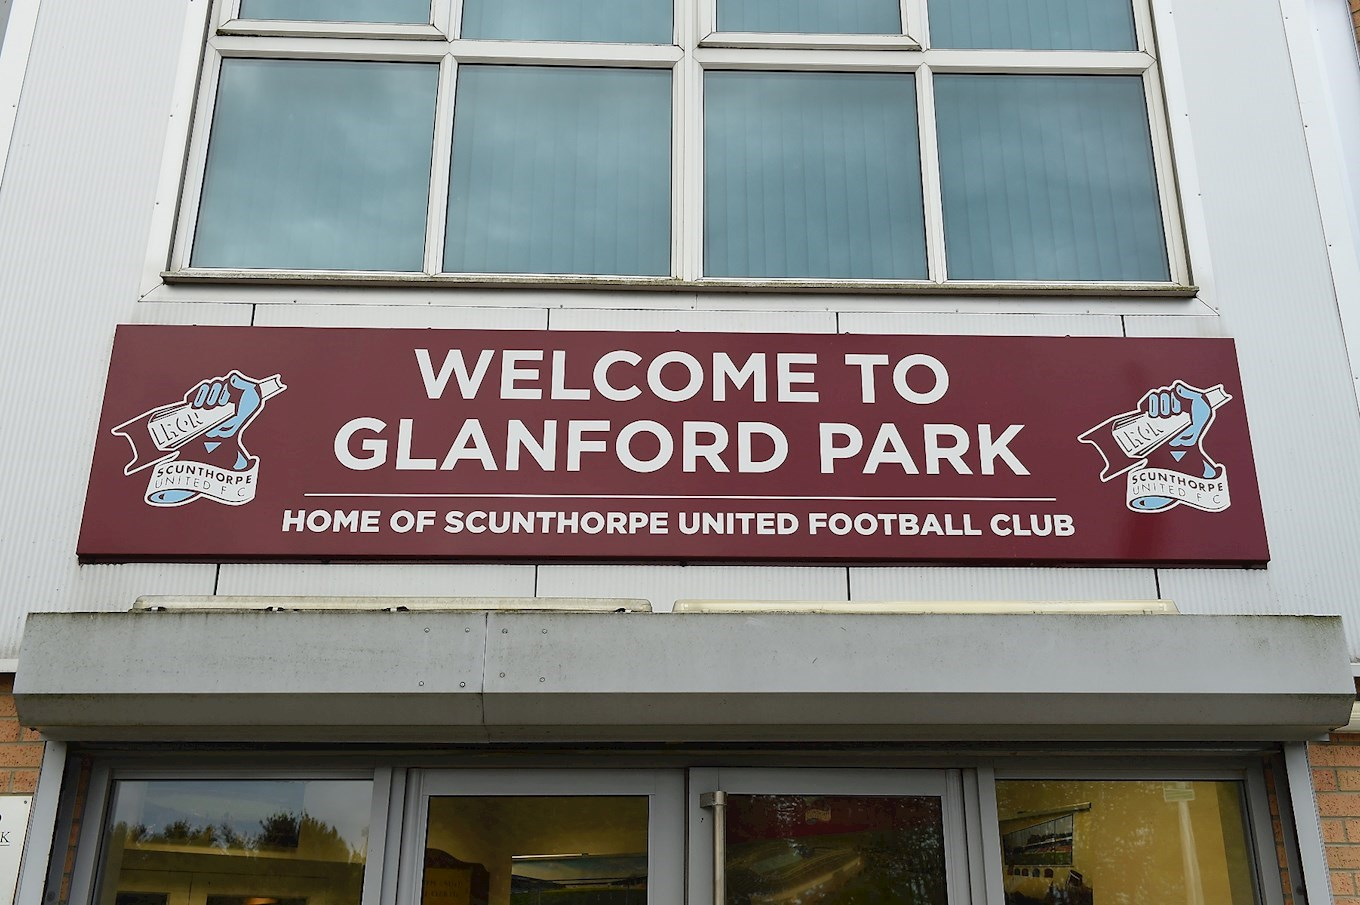 Away Fans Guide Scunthorpe United News Bradford City